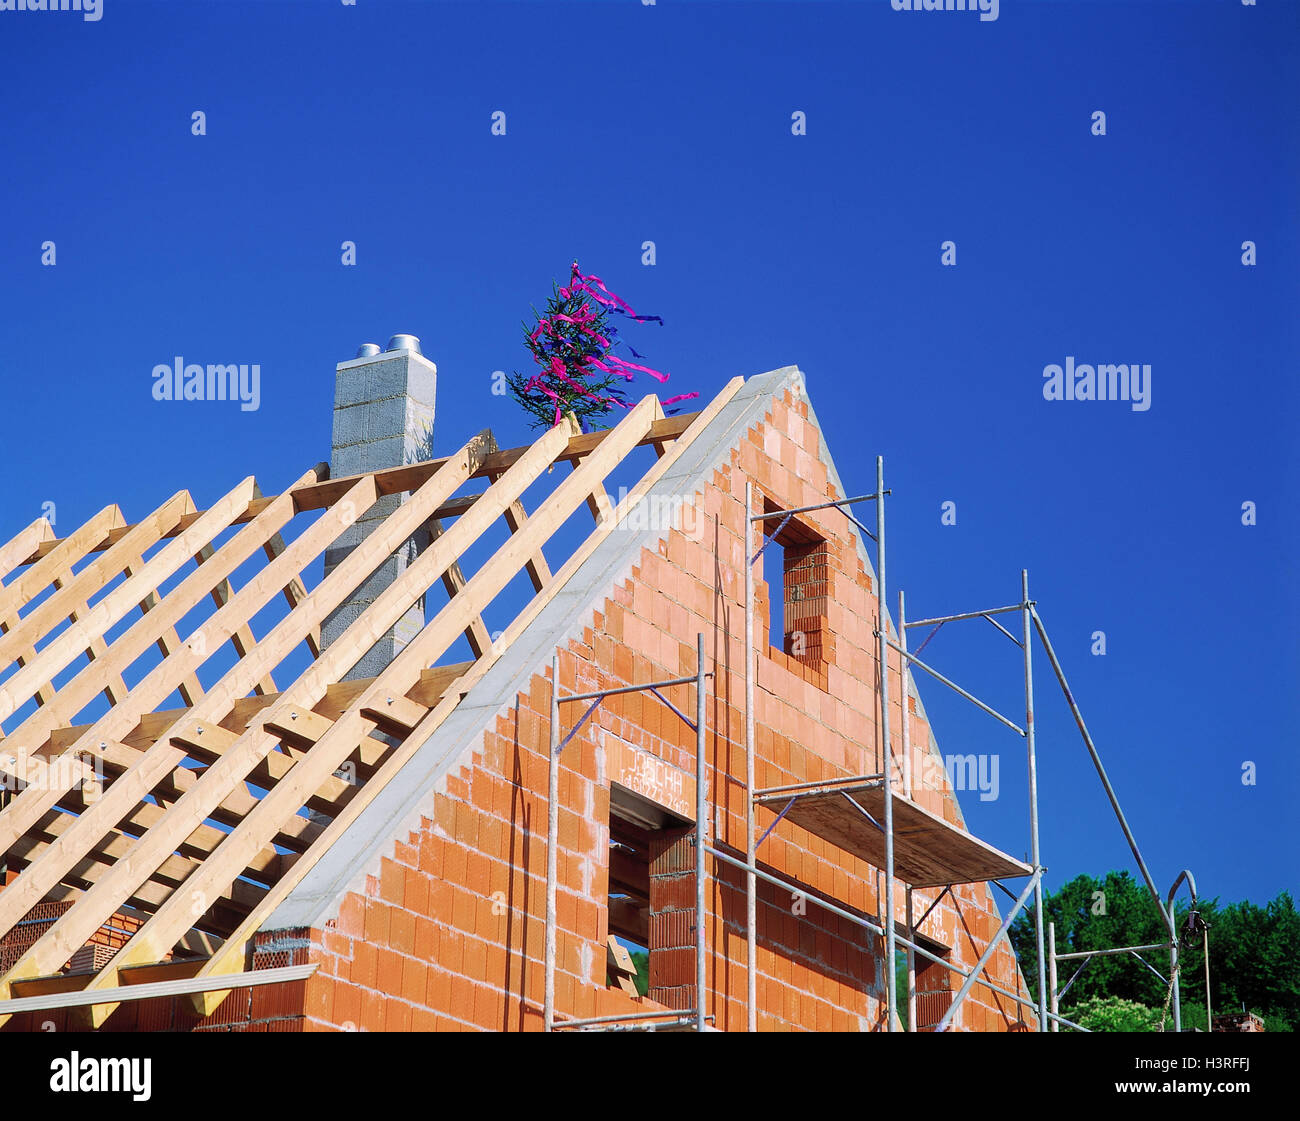 topping out ceremony stockfotos topping out ceremony bilder alamy. Black Bedroom Furniture Sets. Home Design Ideas